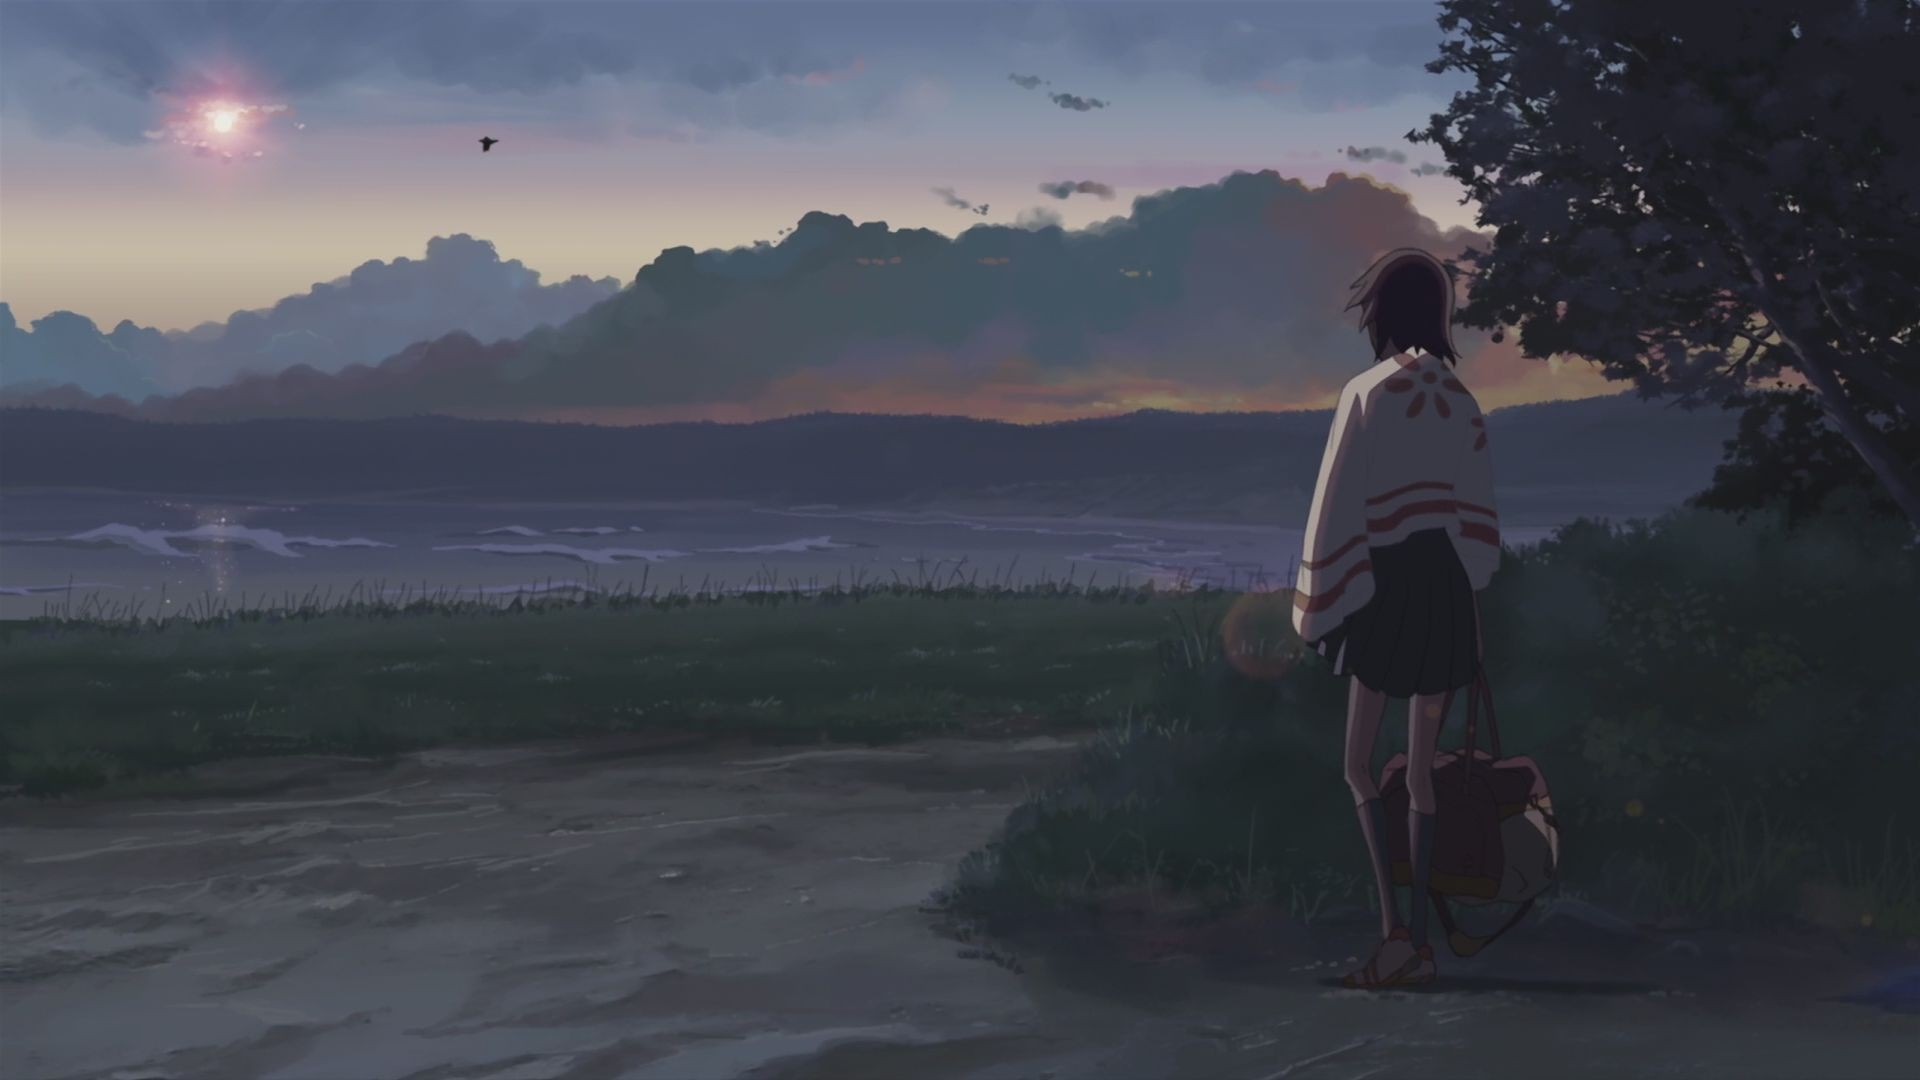 Free Download 5cm Per Second Wallpaper Lovely Iphone - 5 Centimeters Per Second Beach , HD Wallpaper & Backgrounds